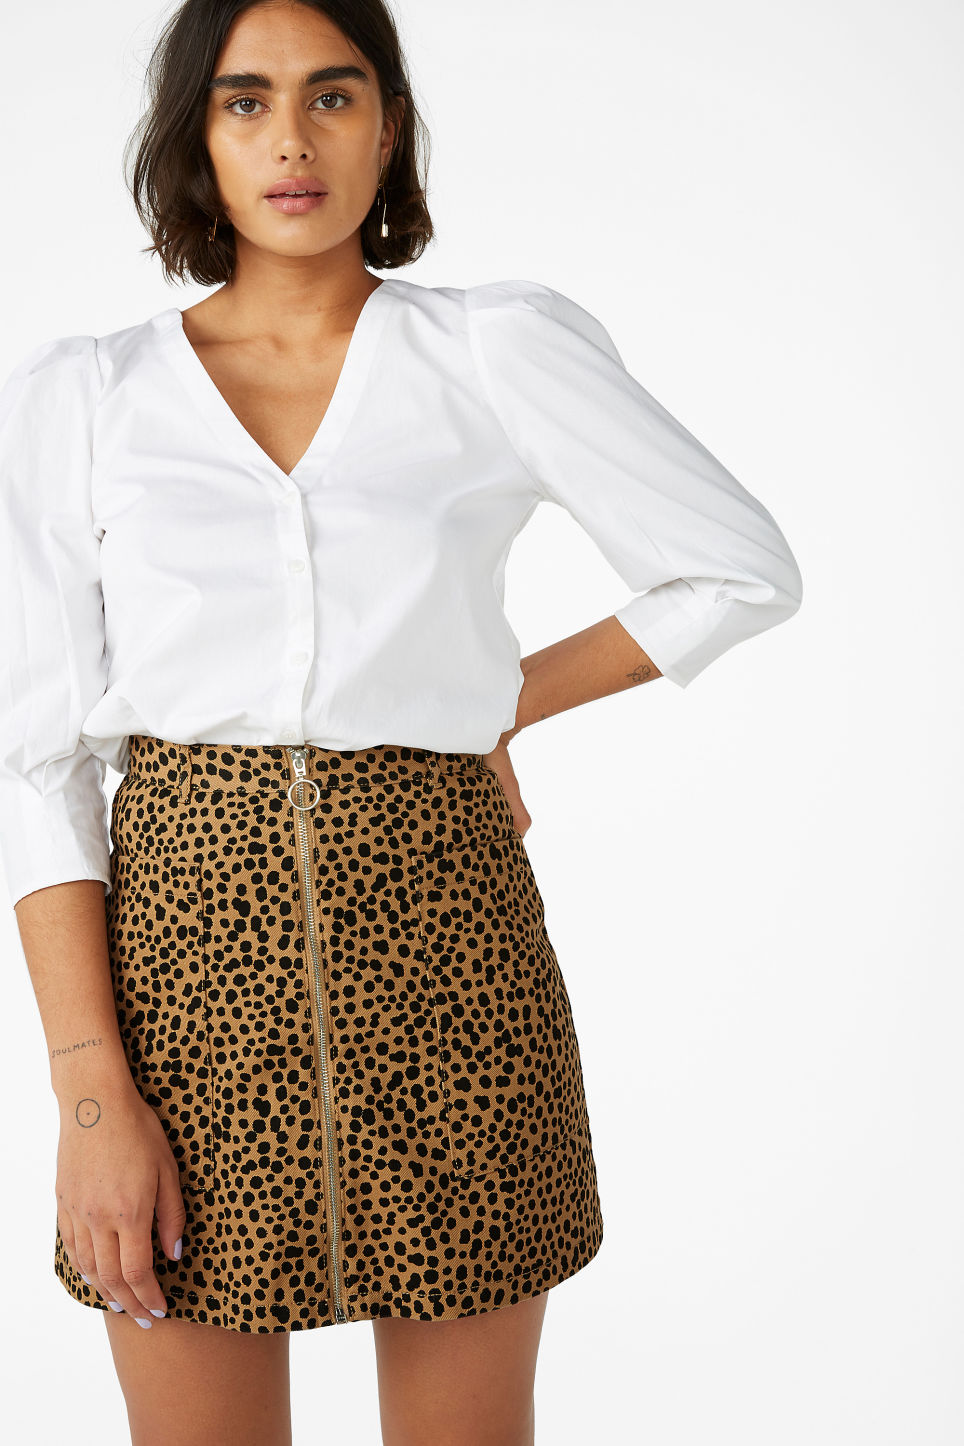 Monki Leopard Mini SKirt